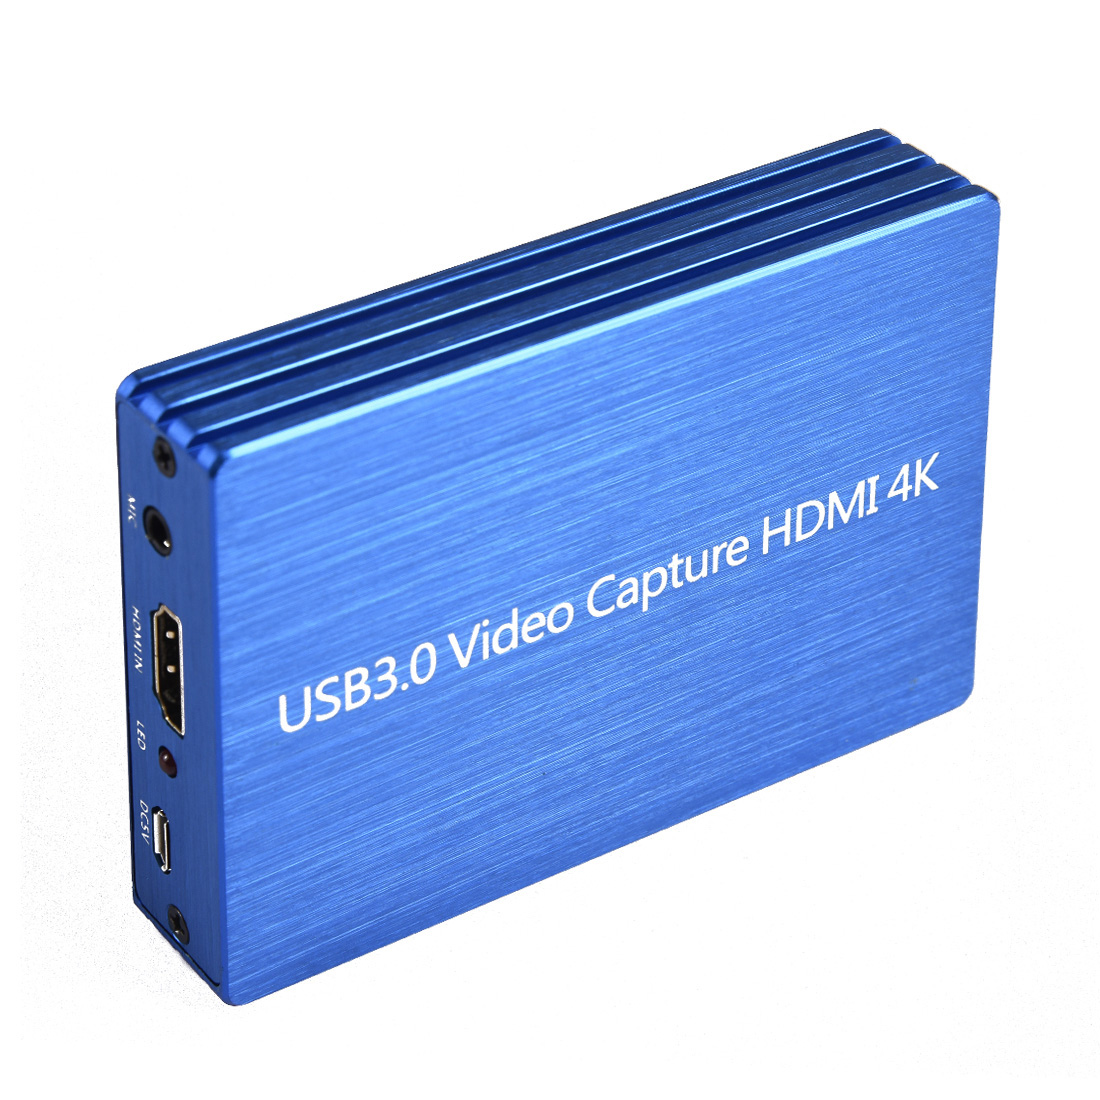 Capture Card 4K HDMI to USB 3.0 Video Capture Card Adapter Dongle 1080P 60fps HD Video Recorder Computer Components and Hardware